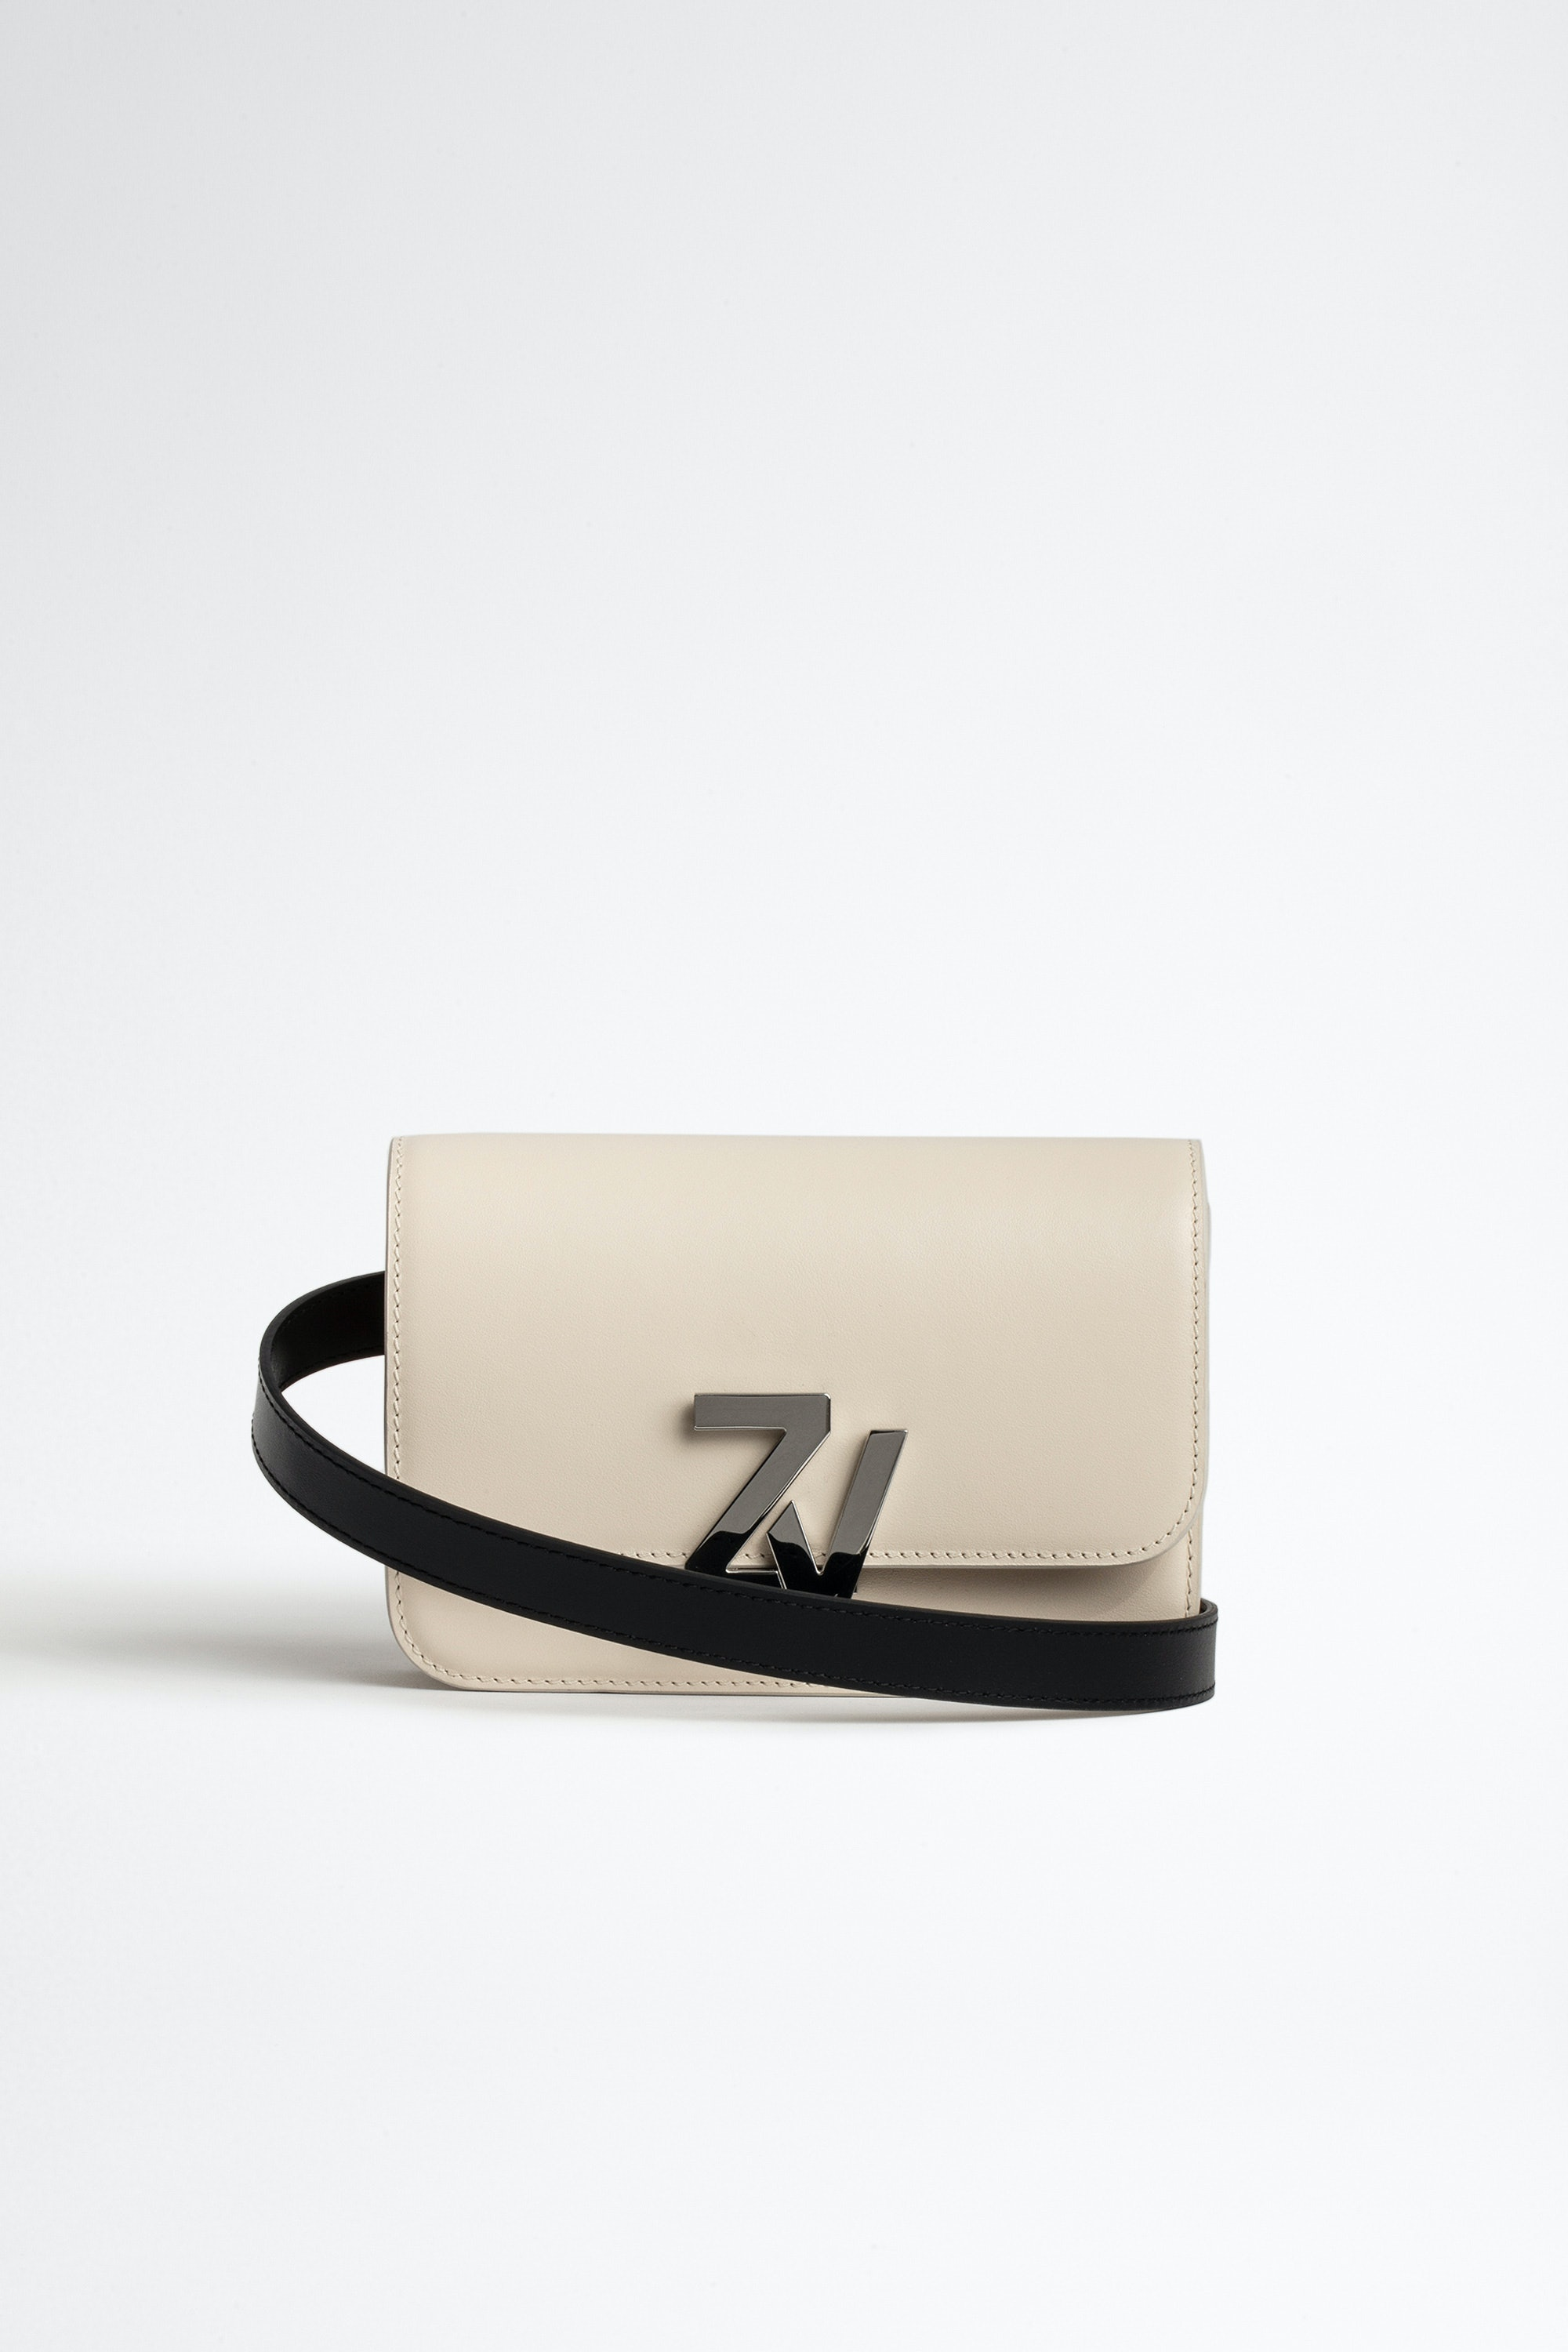 ZV Initiale Le Belt Bag